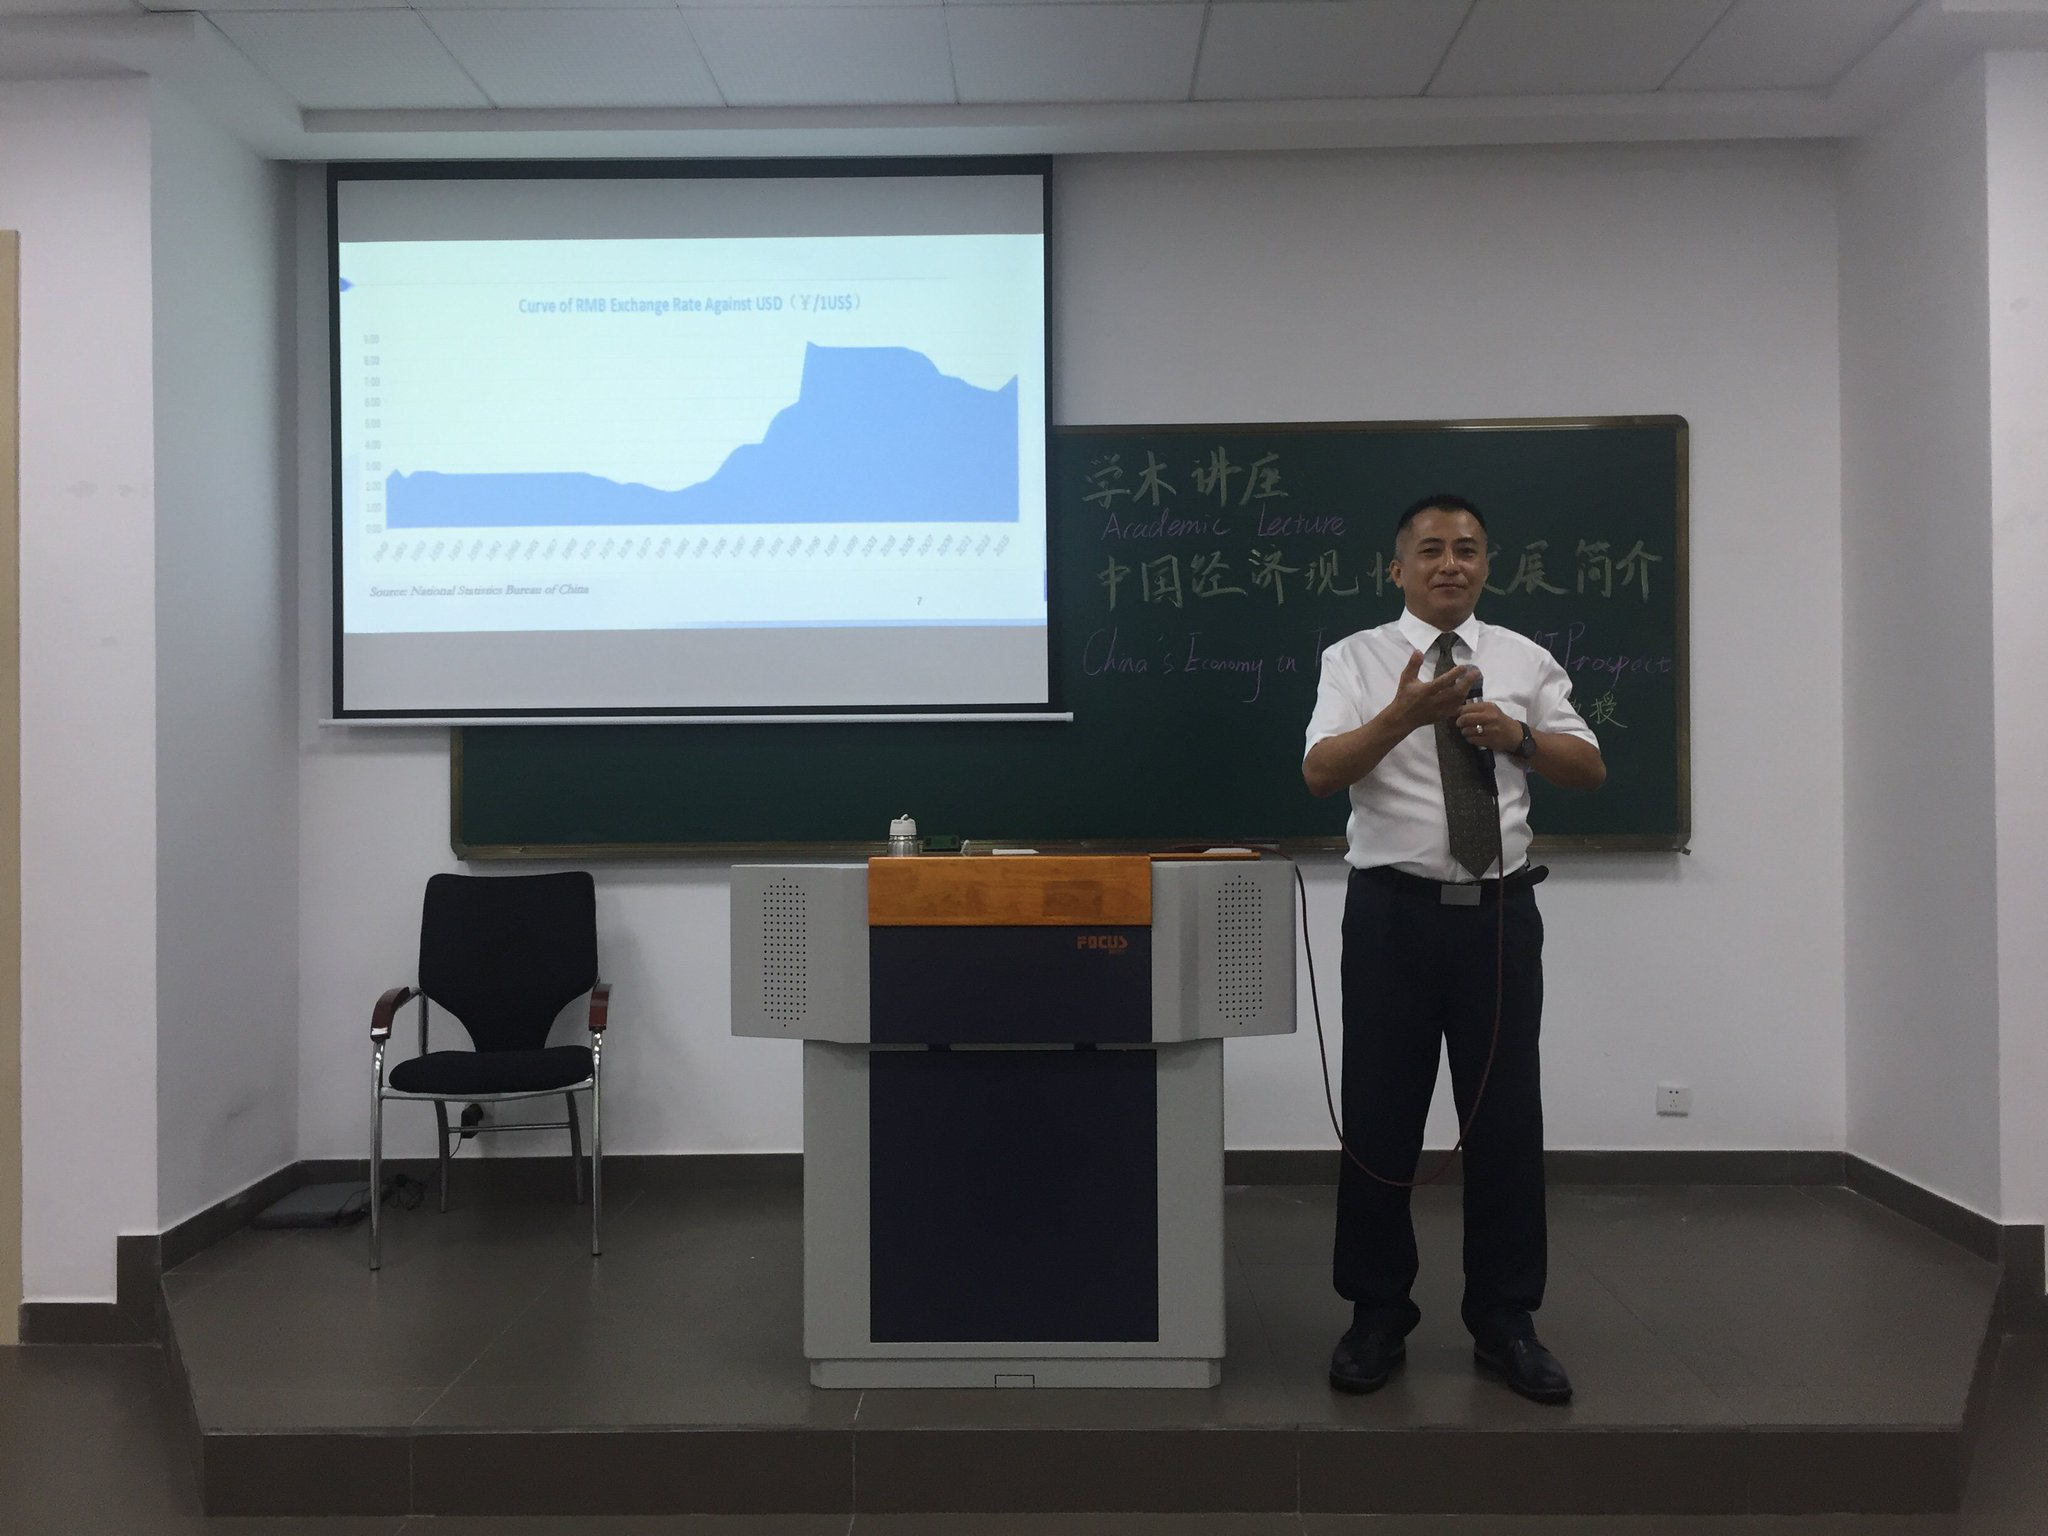 Prof. Yuping Lan delivered Knowledgeable lecture of China's Economy in transition. @GlobalBU  #GlobalFoL17 at #BNUZ https://t.co/ked5TYKK2O